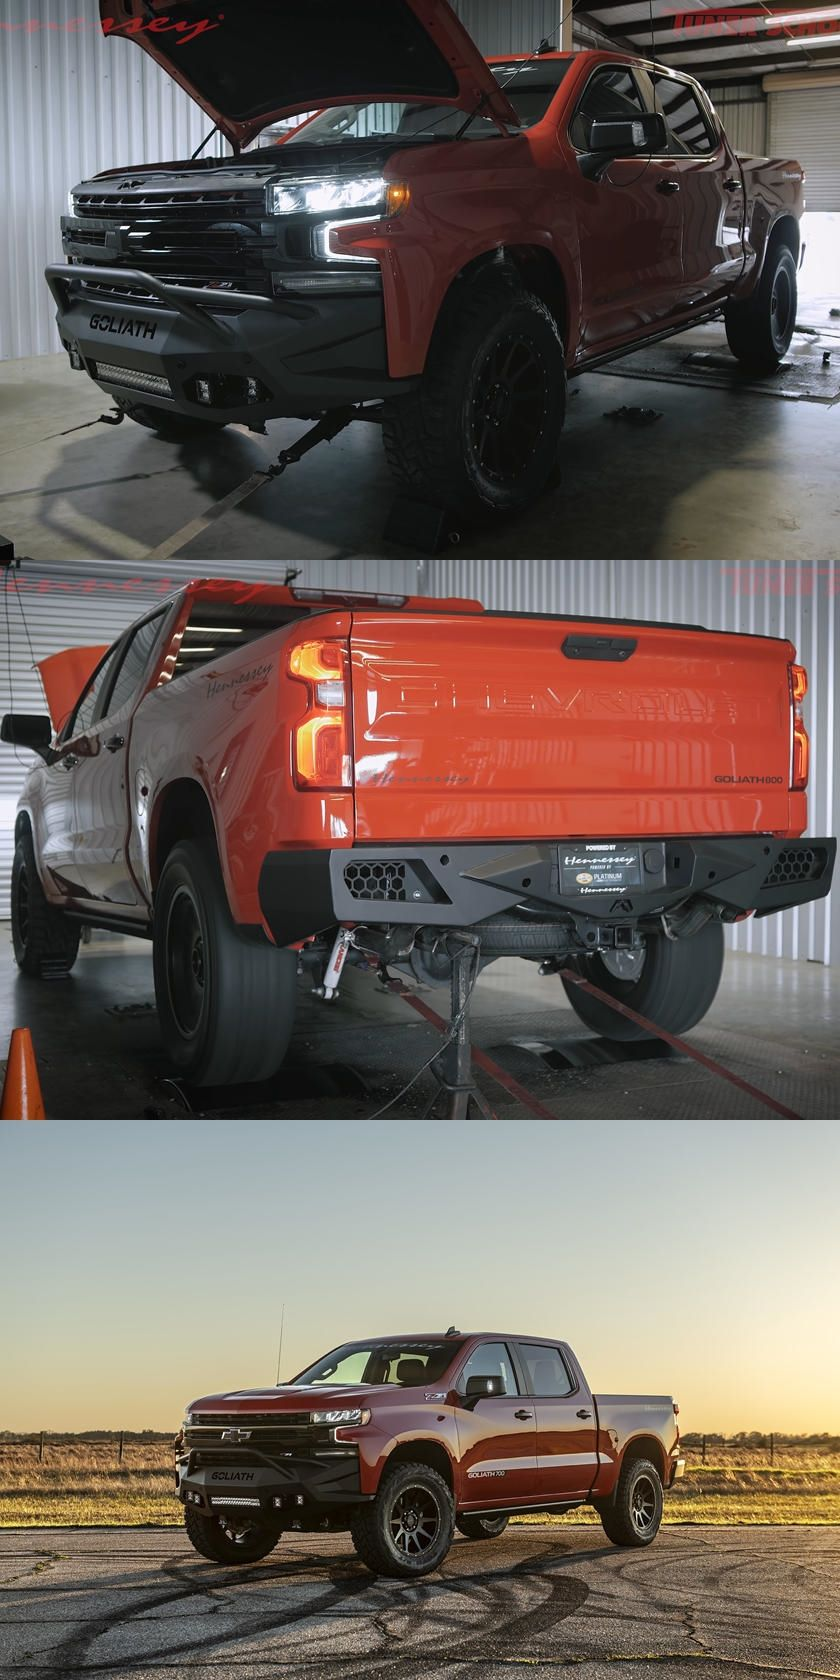 This Is The World S Most Powerful 2020 Chevrolet Silverado Find Out How Much Horsepower Hennessey S Modified Chevrolet Chevrolet Silverado Chevrolet Silverado